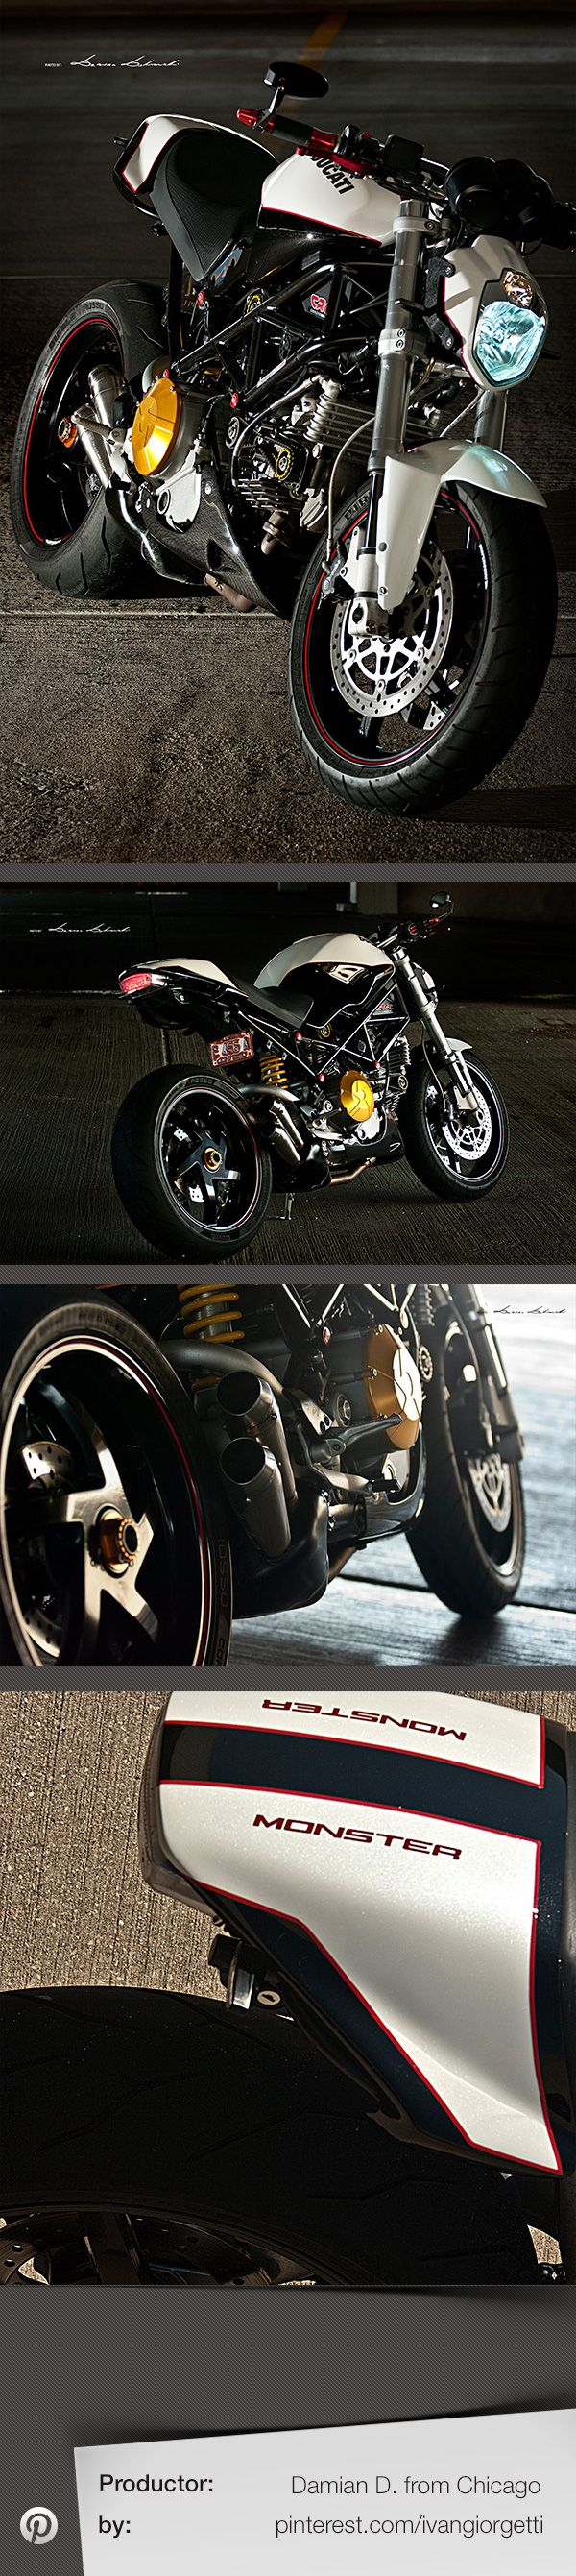 Ducati Monster S2R by Damian D. from Chicago